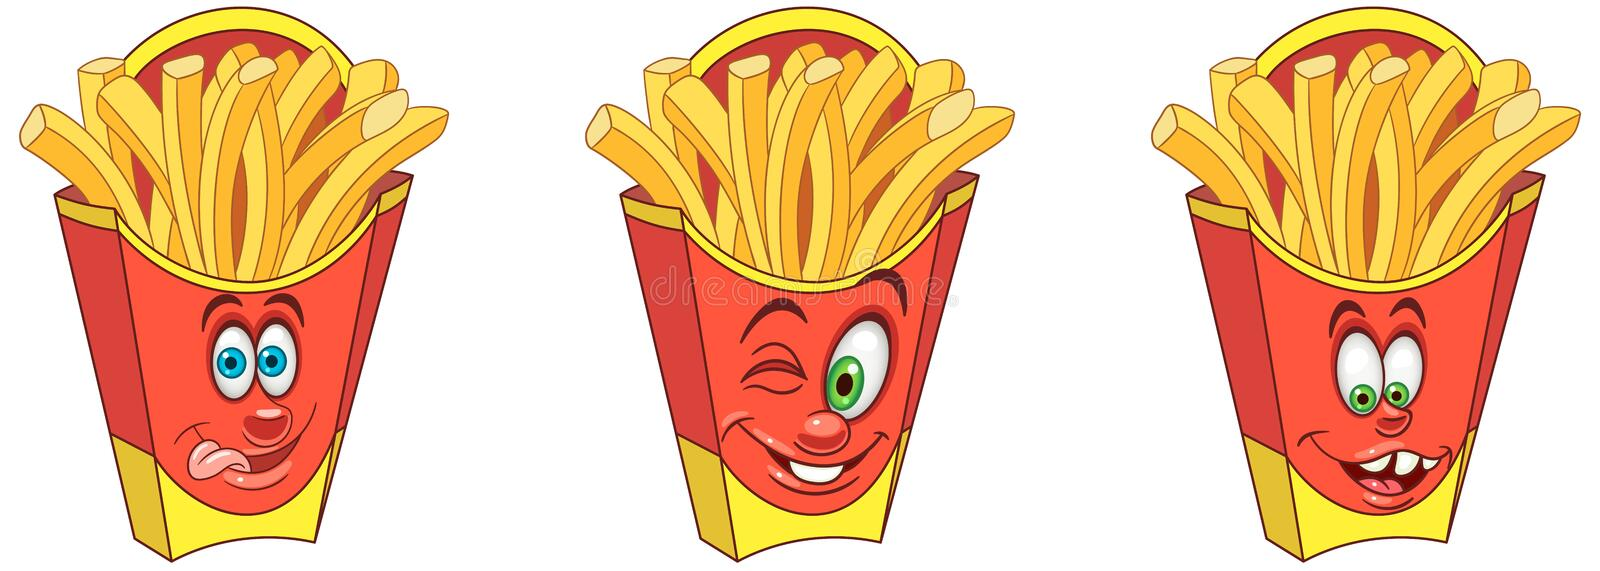 French Fries. Snack Food concept vector illustration